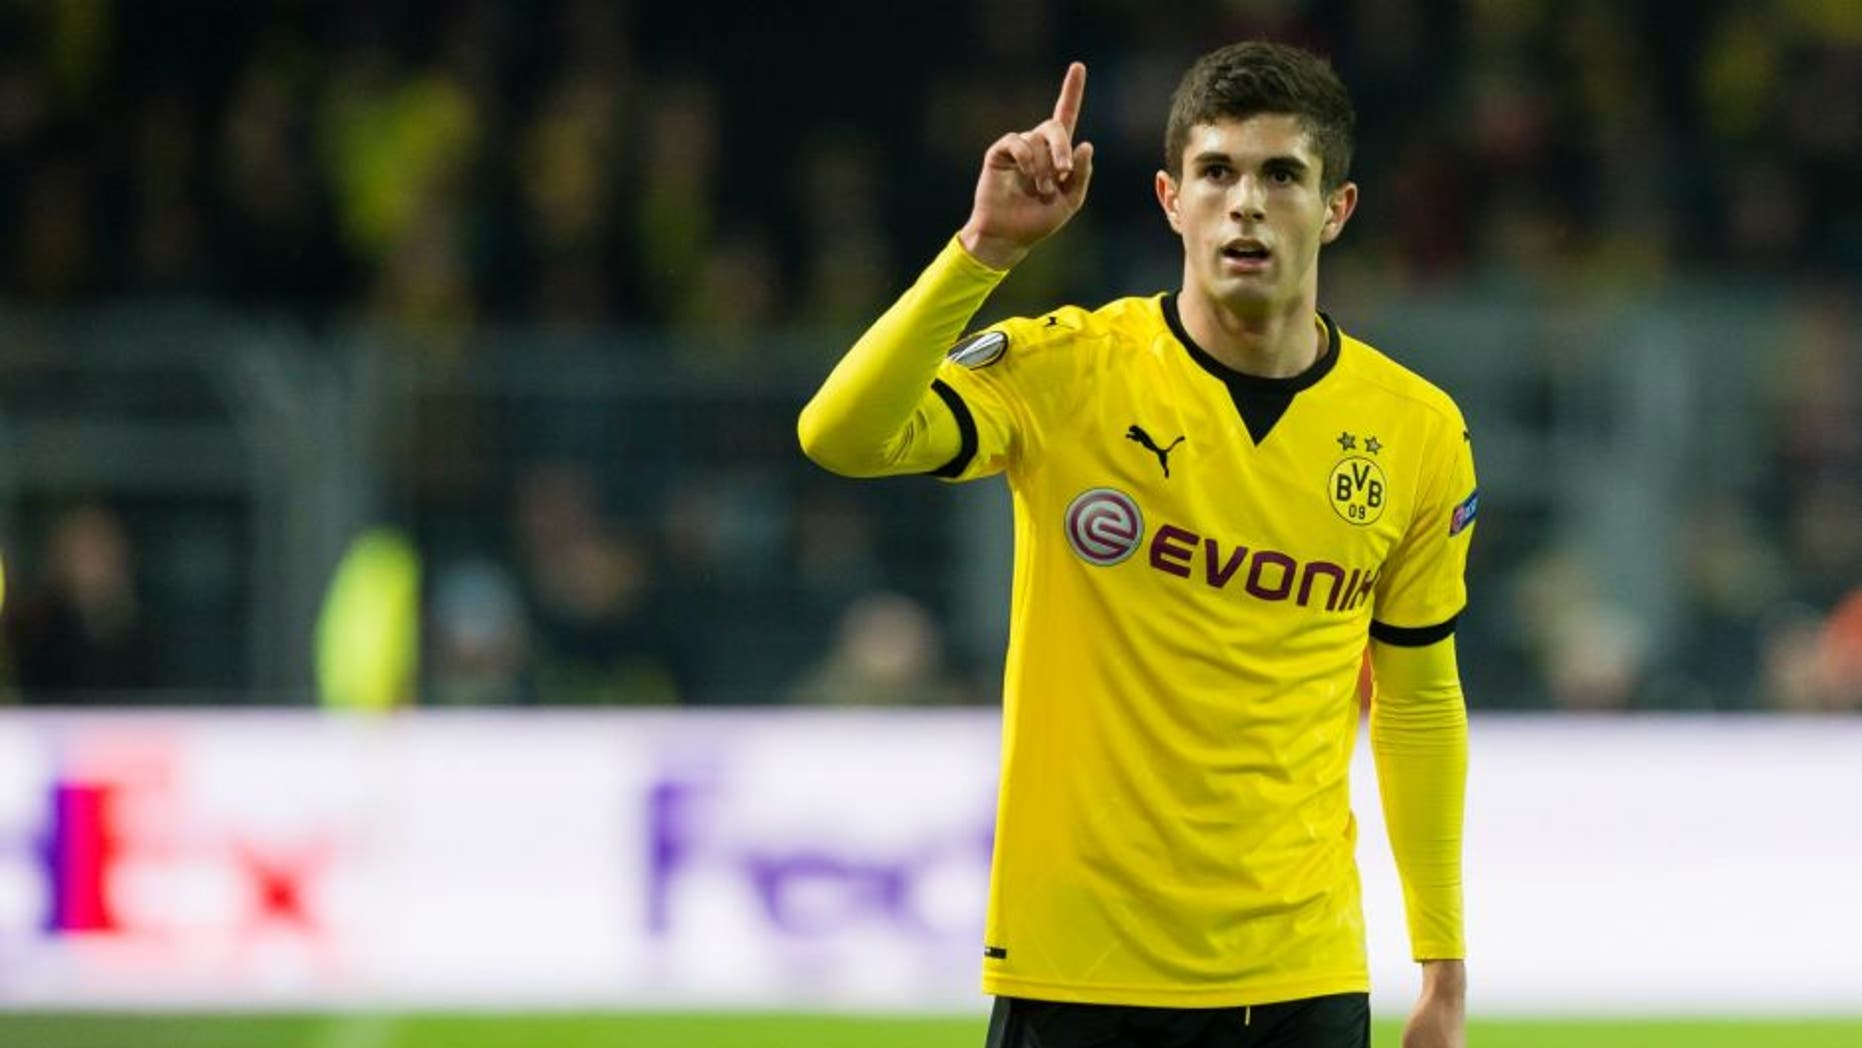 DORTMUND, GERMANY - APRIL 07: Christian Pulisic of Borussia Dortmund in action during the UEFA Europa League quarter final first leg match between Borussia Dortmund and Liverpool FC at Signal Iduna Park on April 7, 2016 in Dortmund, Germany. (Photo by Alexandre Simoes/Borussia Dortmund/Getty Images)